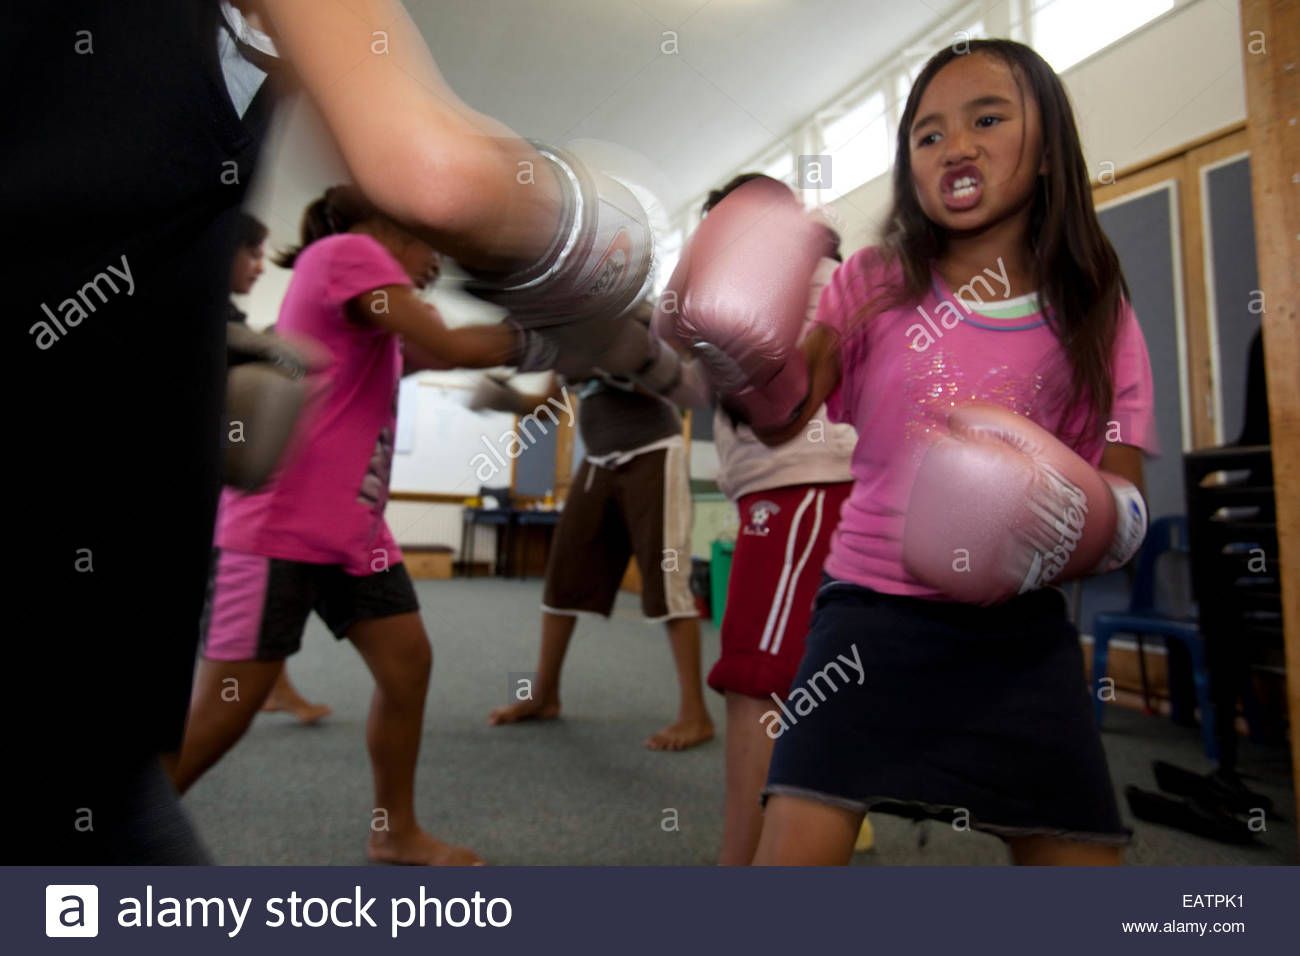 A young Maori girl practices boxing. - Stock Image